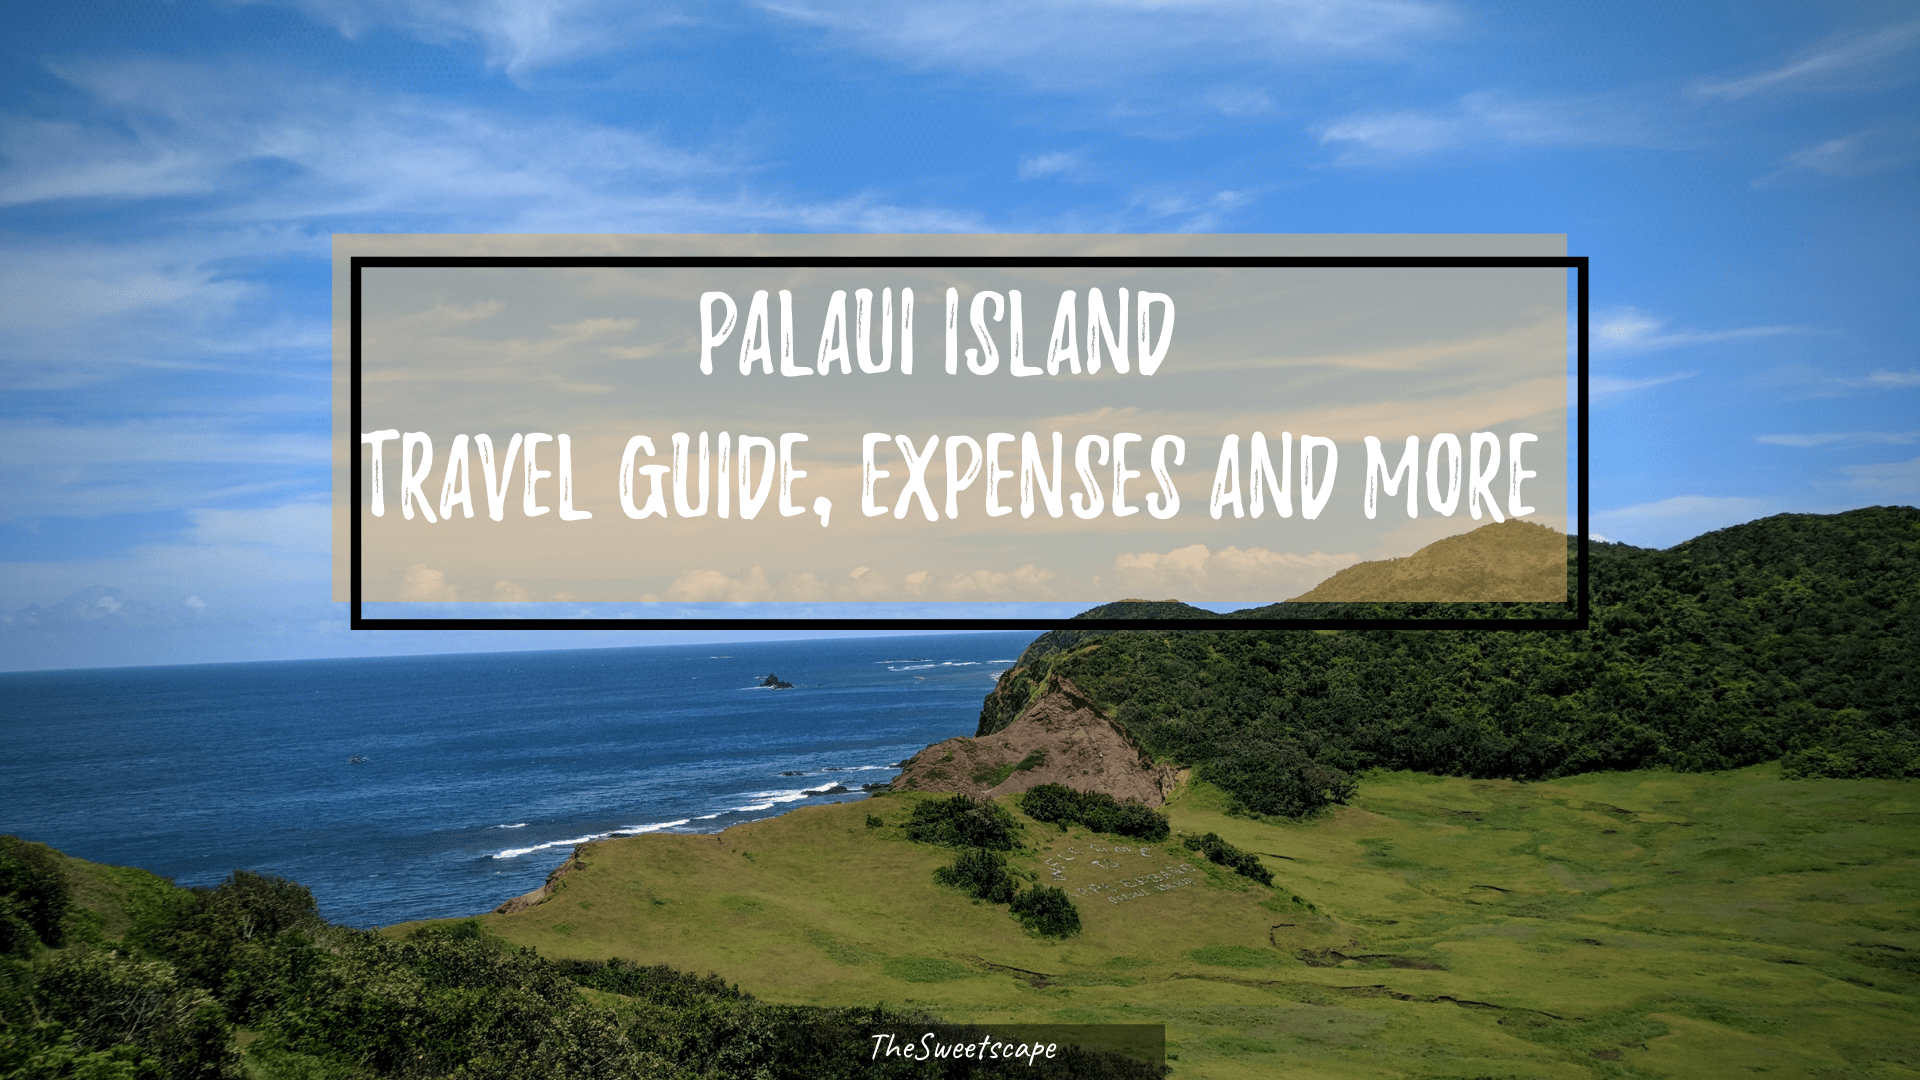 Palaui Island: Travel Guide, Expenses and more